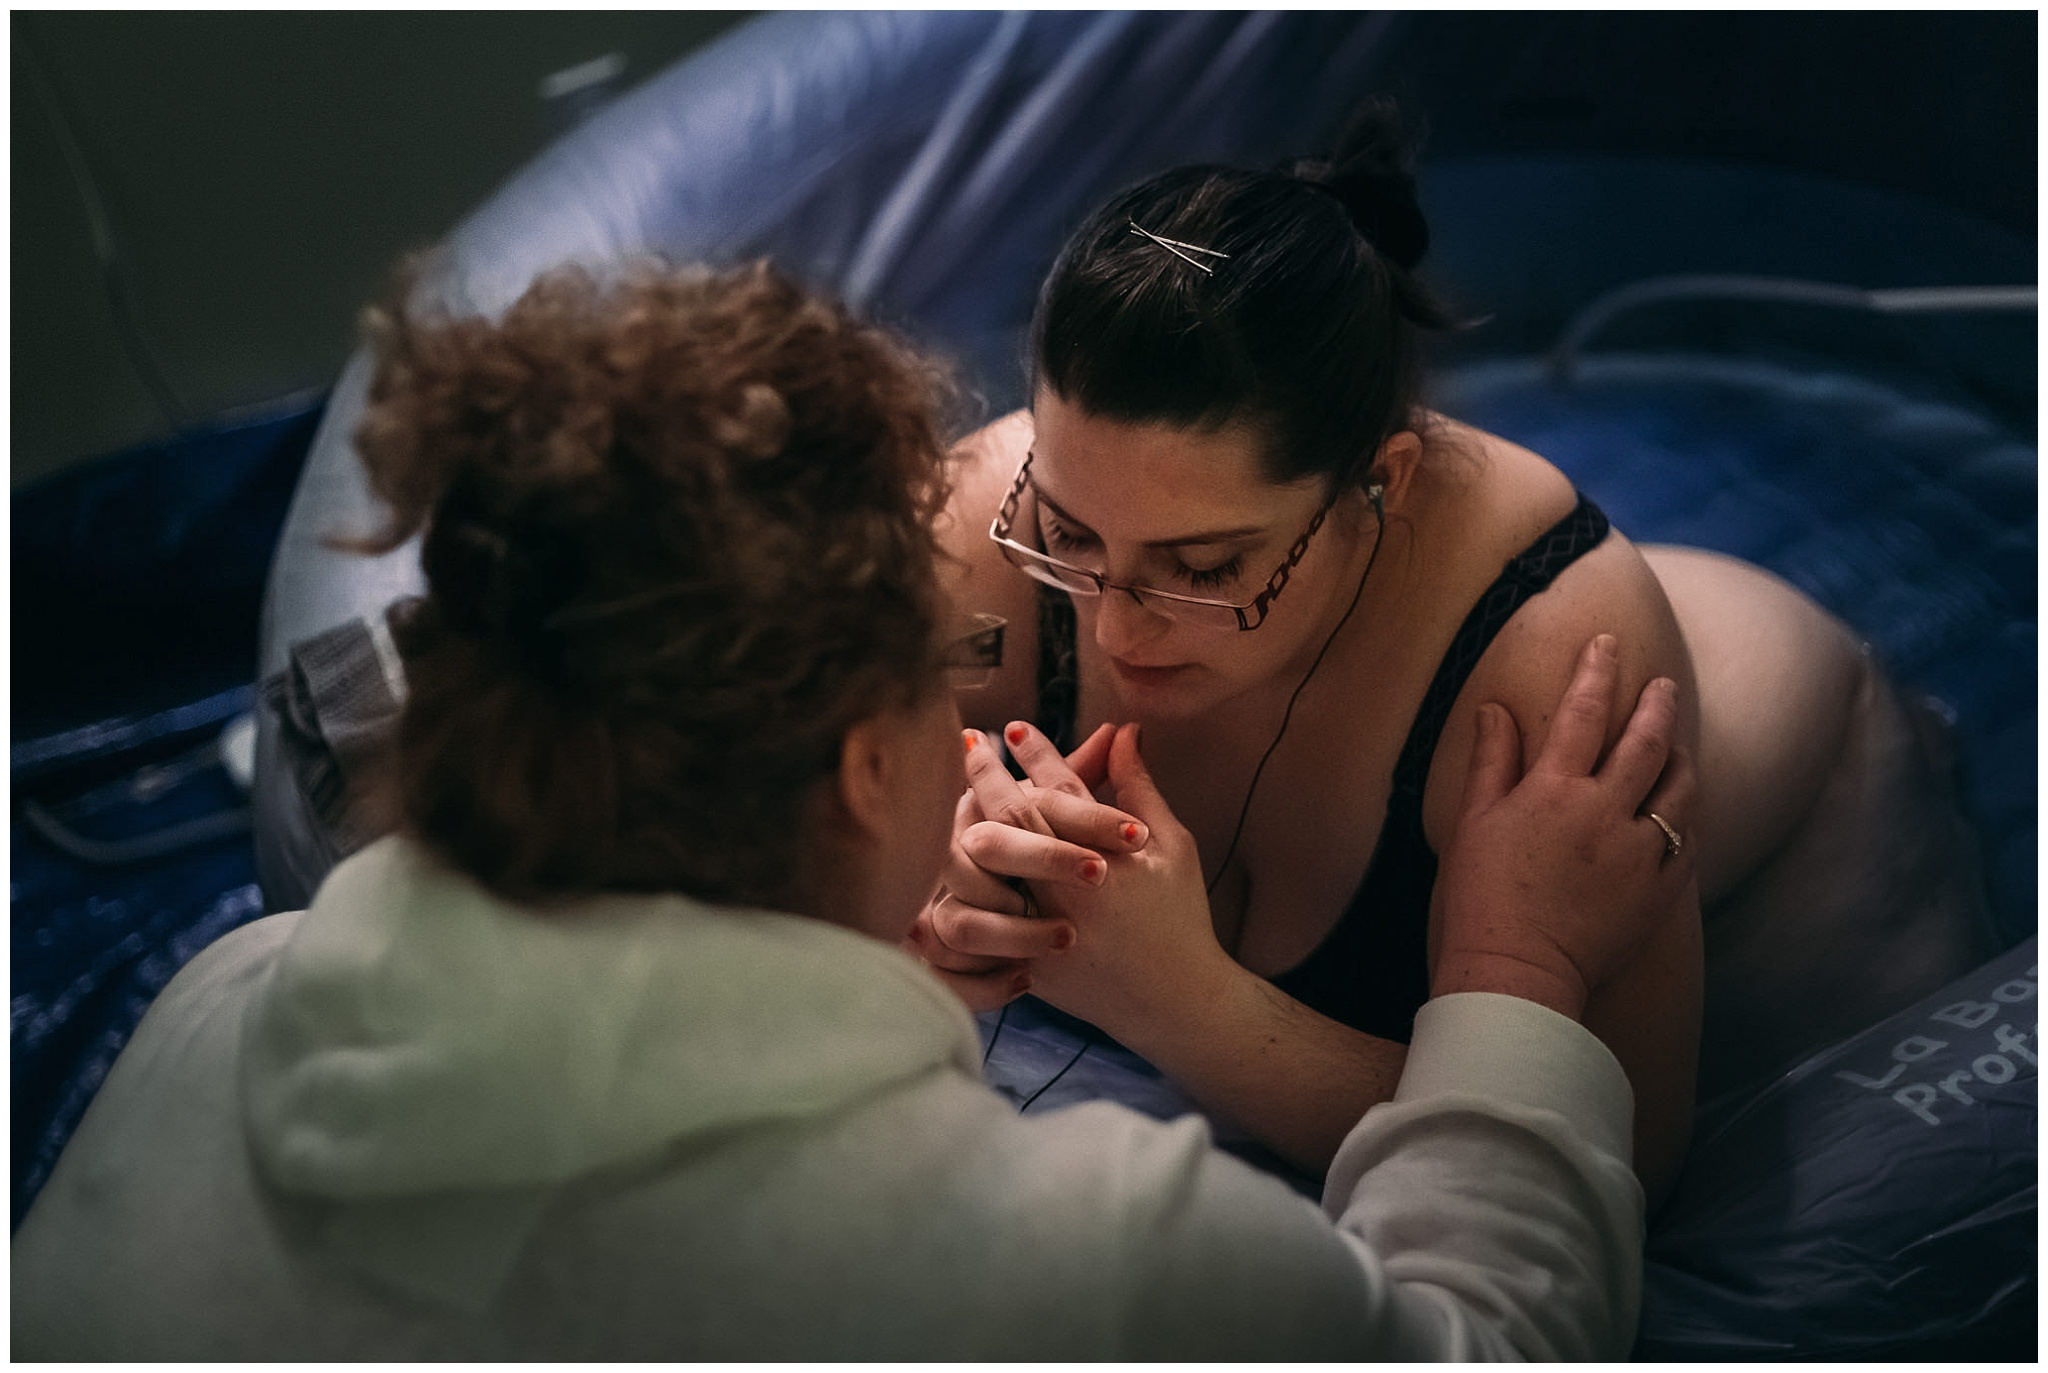 doula praying with mother while birthing newborn in birthing pool